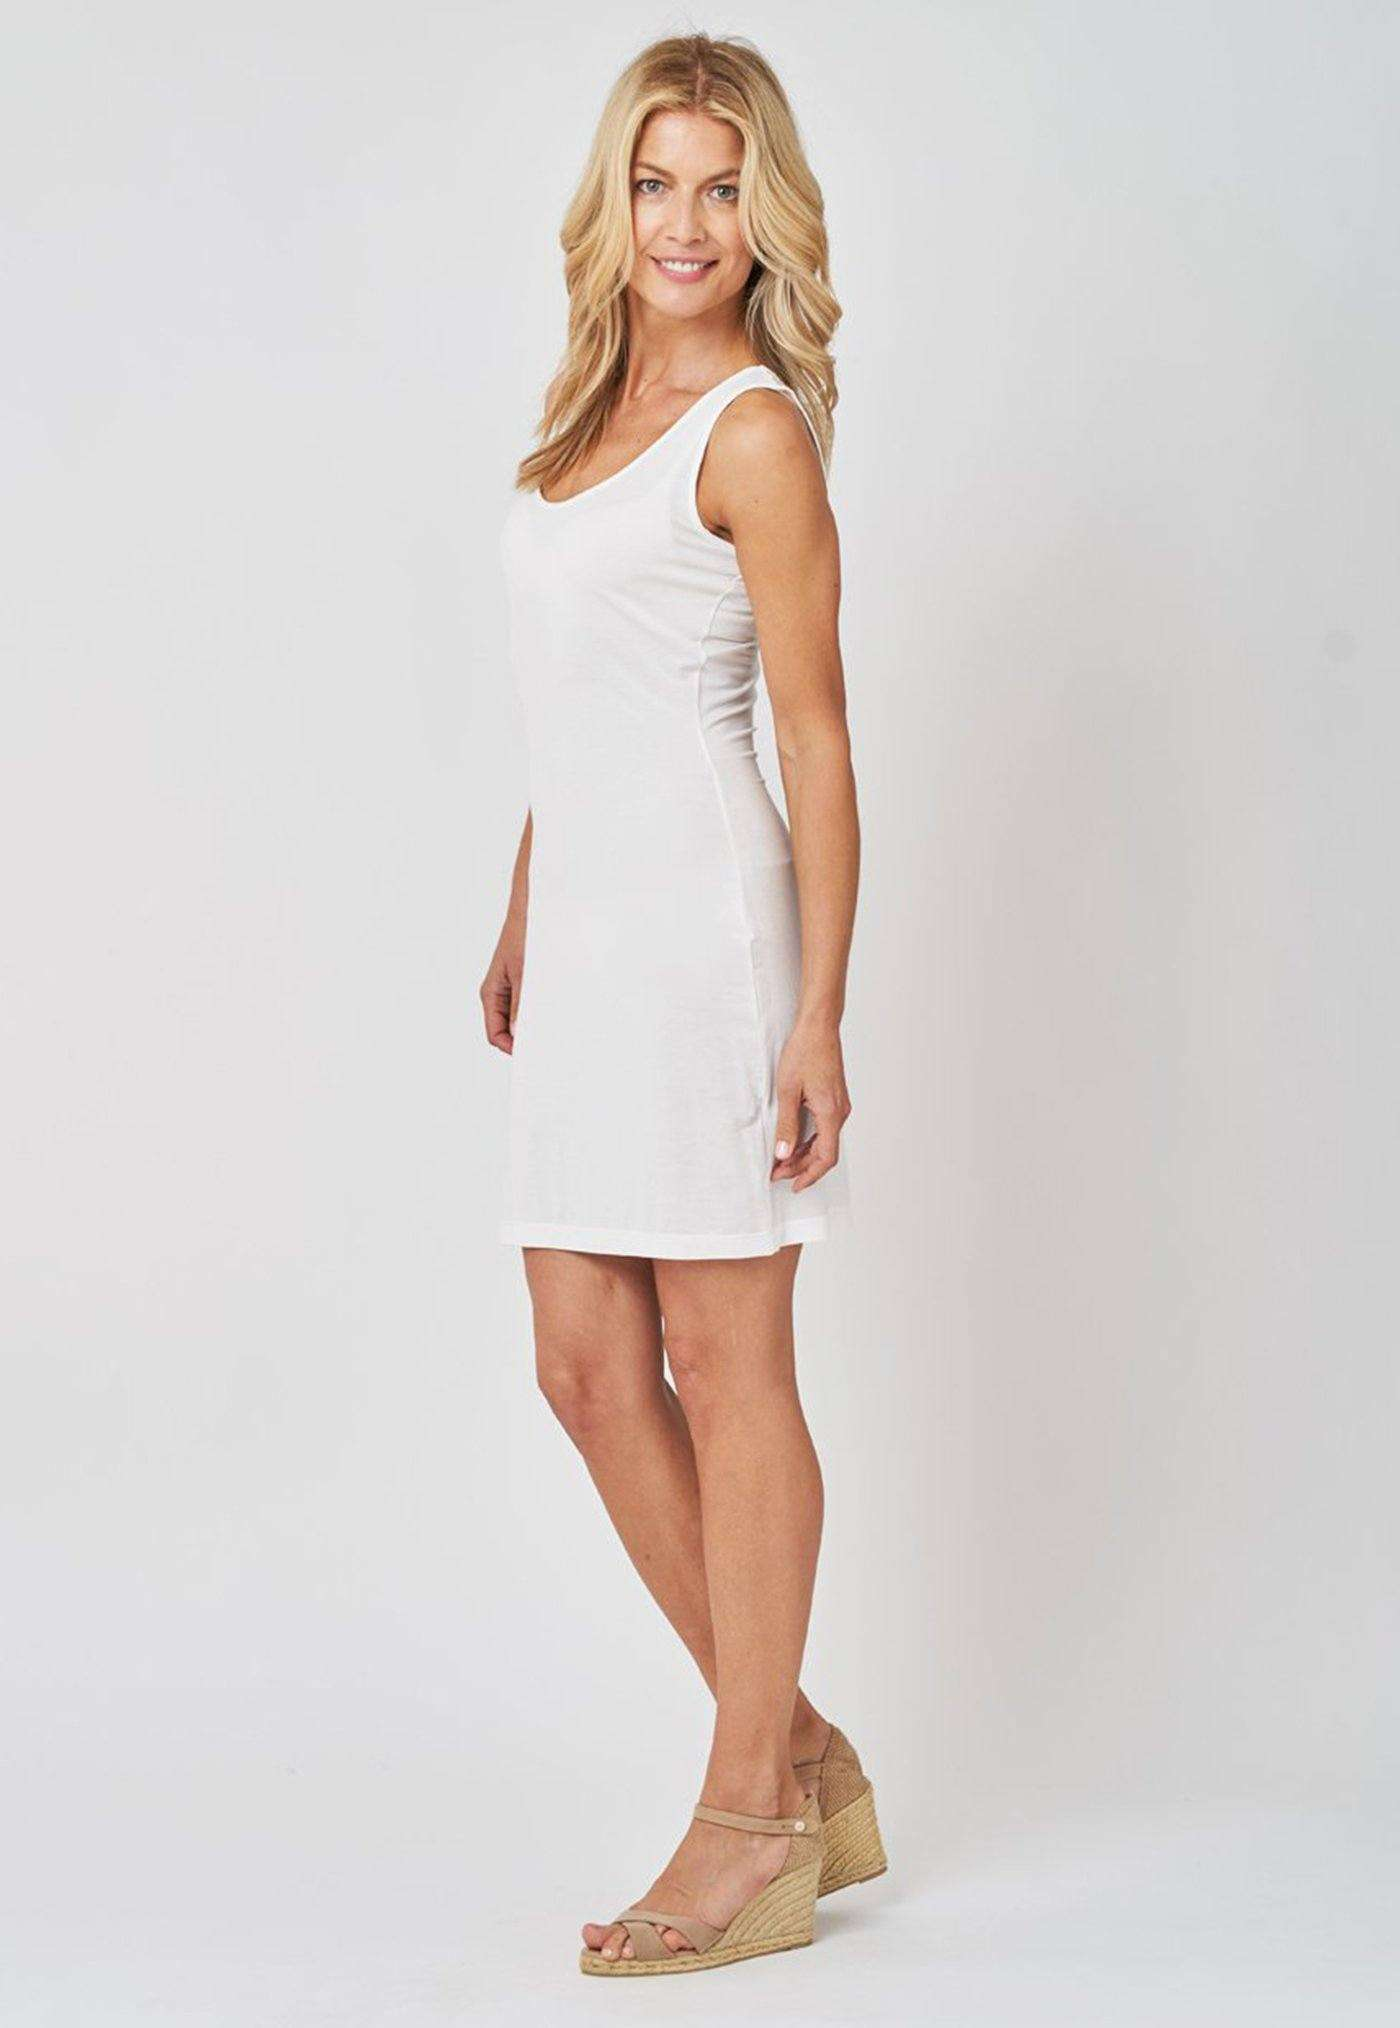 Perle Short Dress side view